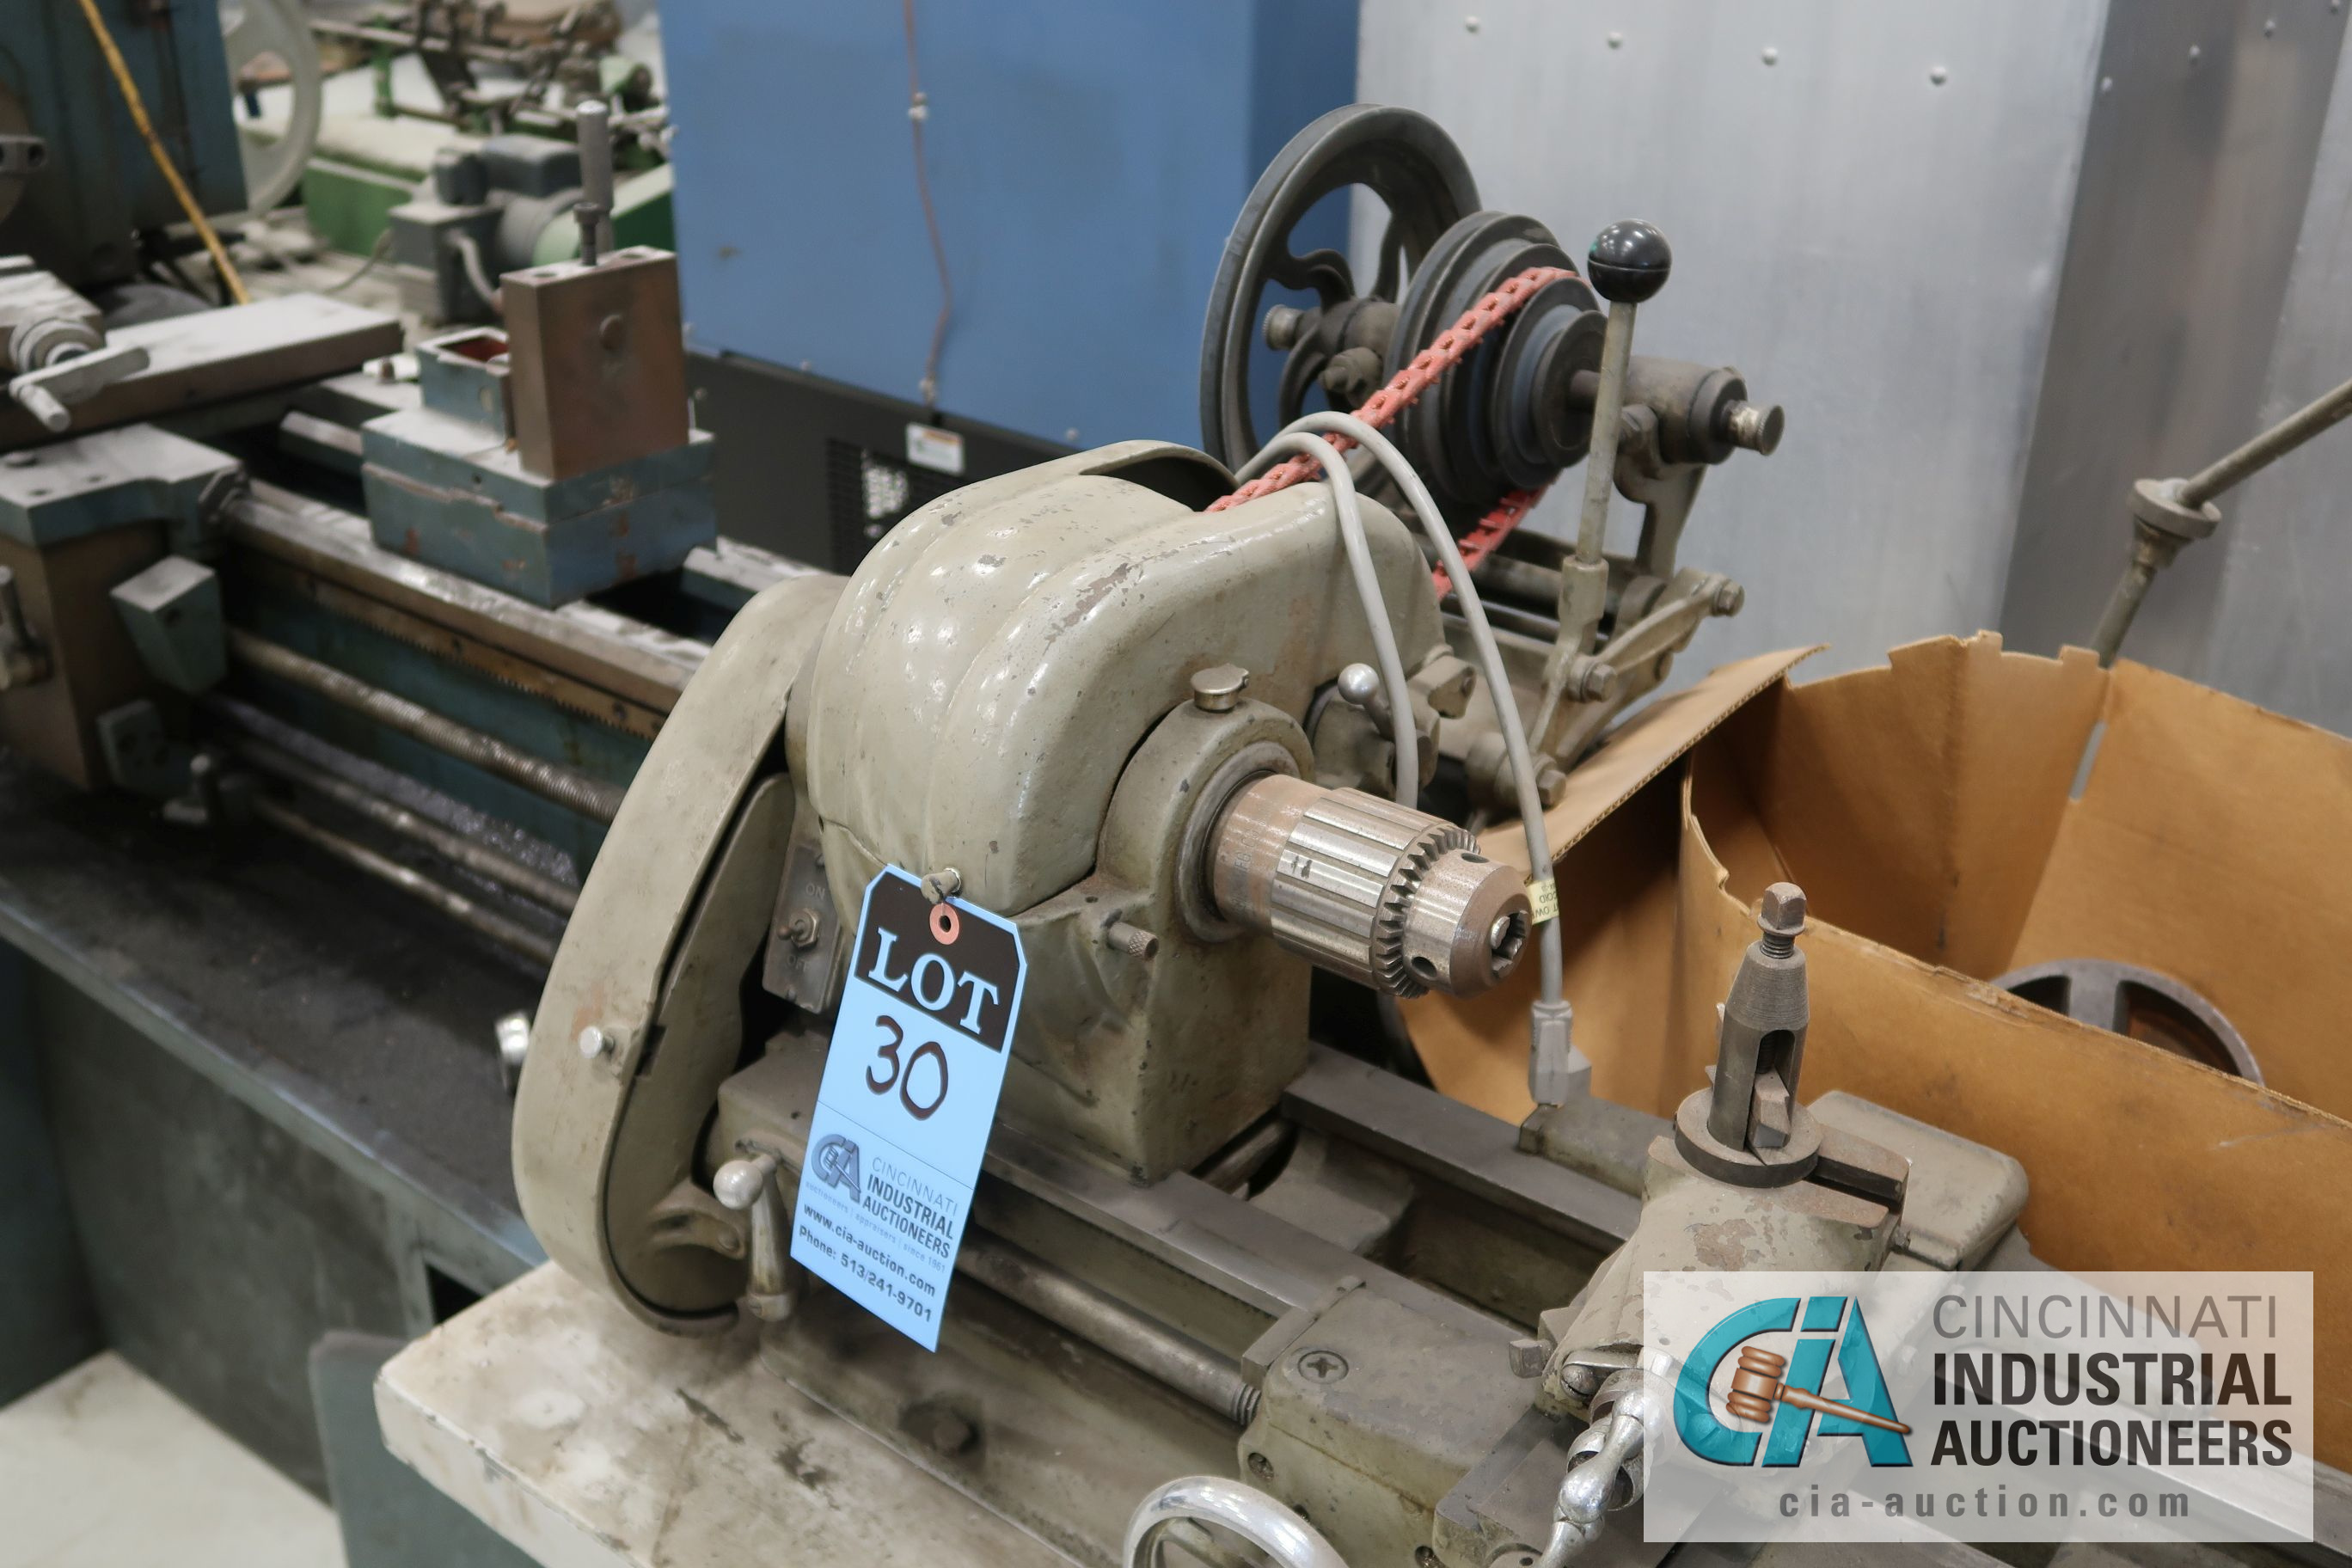 ATLAS MODEL TH48 BENCH TOP LATHE; S/N 058298, WITH WORK BENCH AND MACHINE ACCESSORIES, 110 VOLT - Image 2 of 8